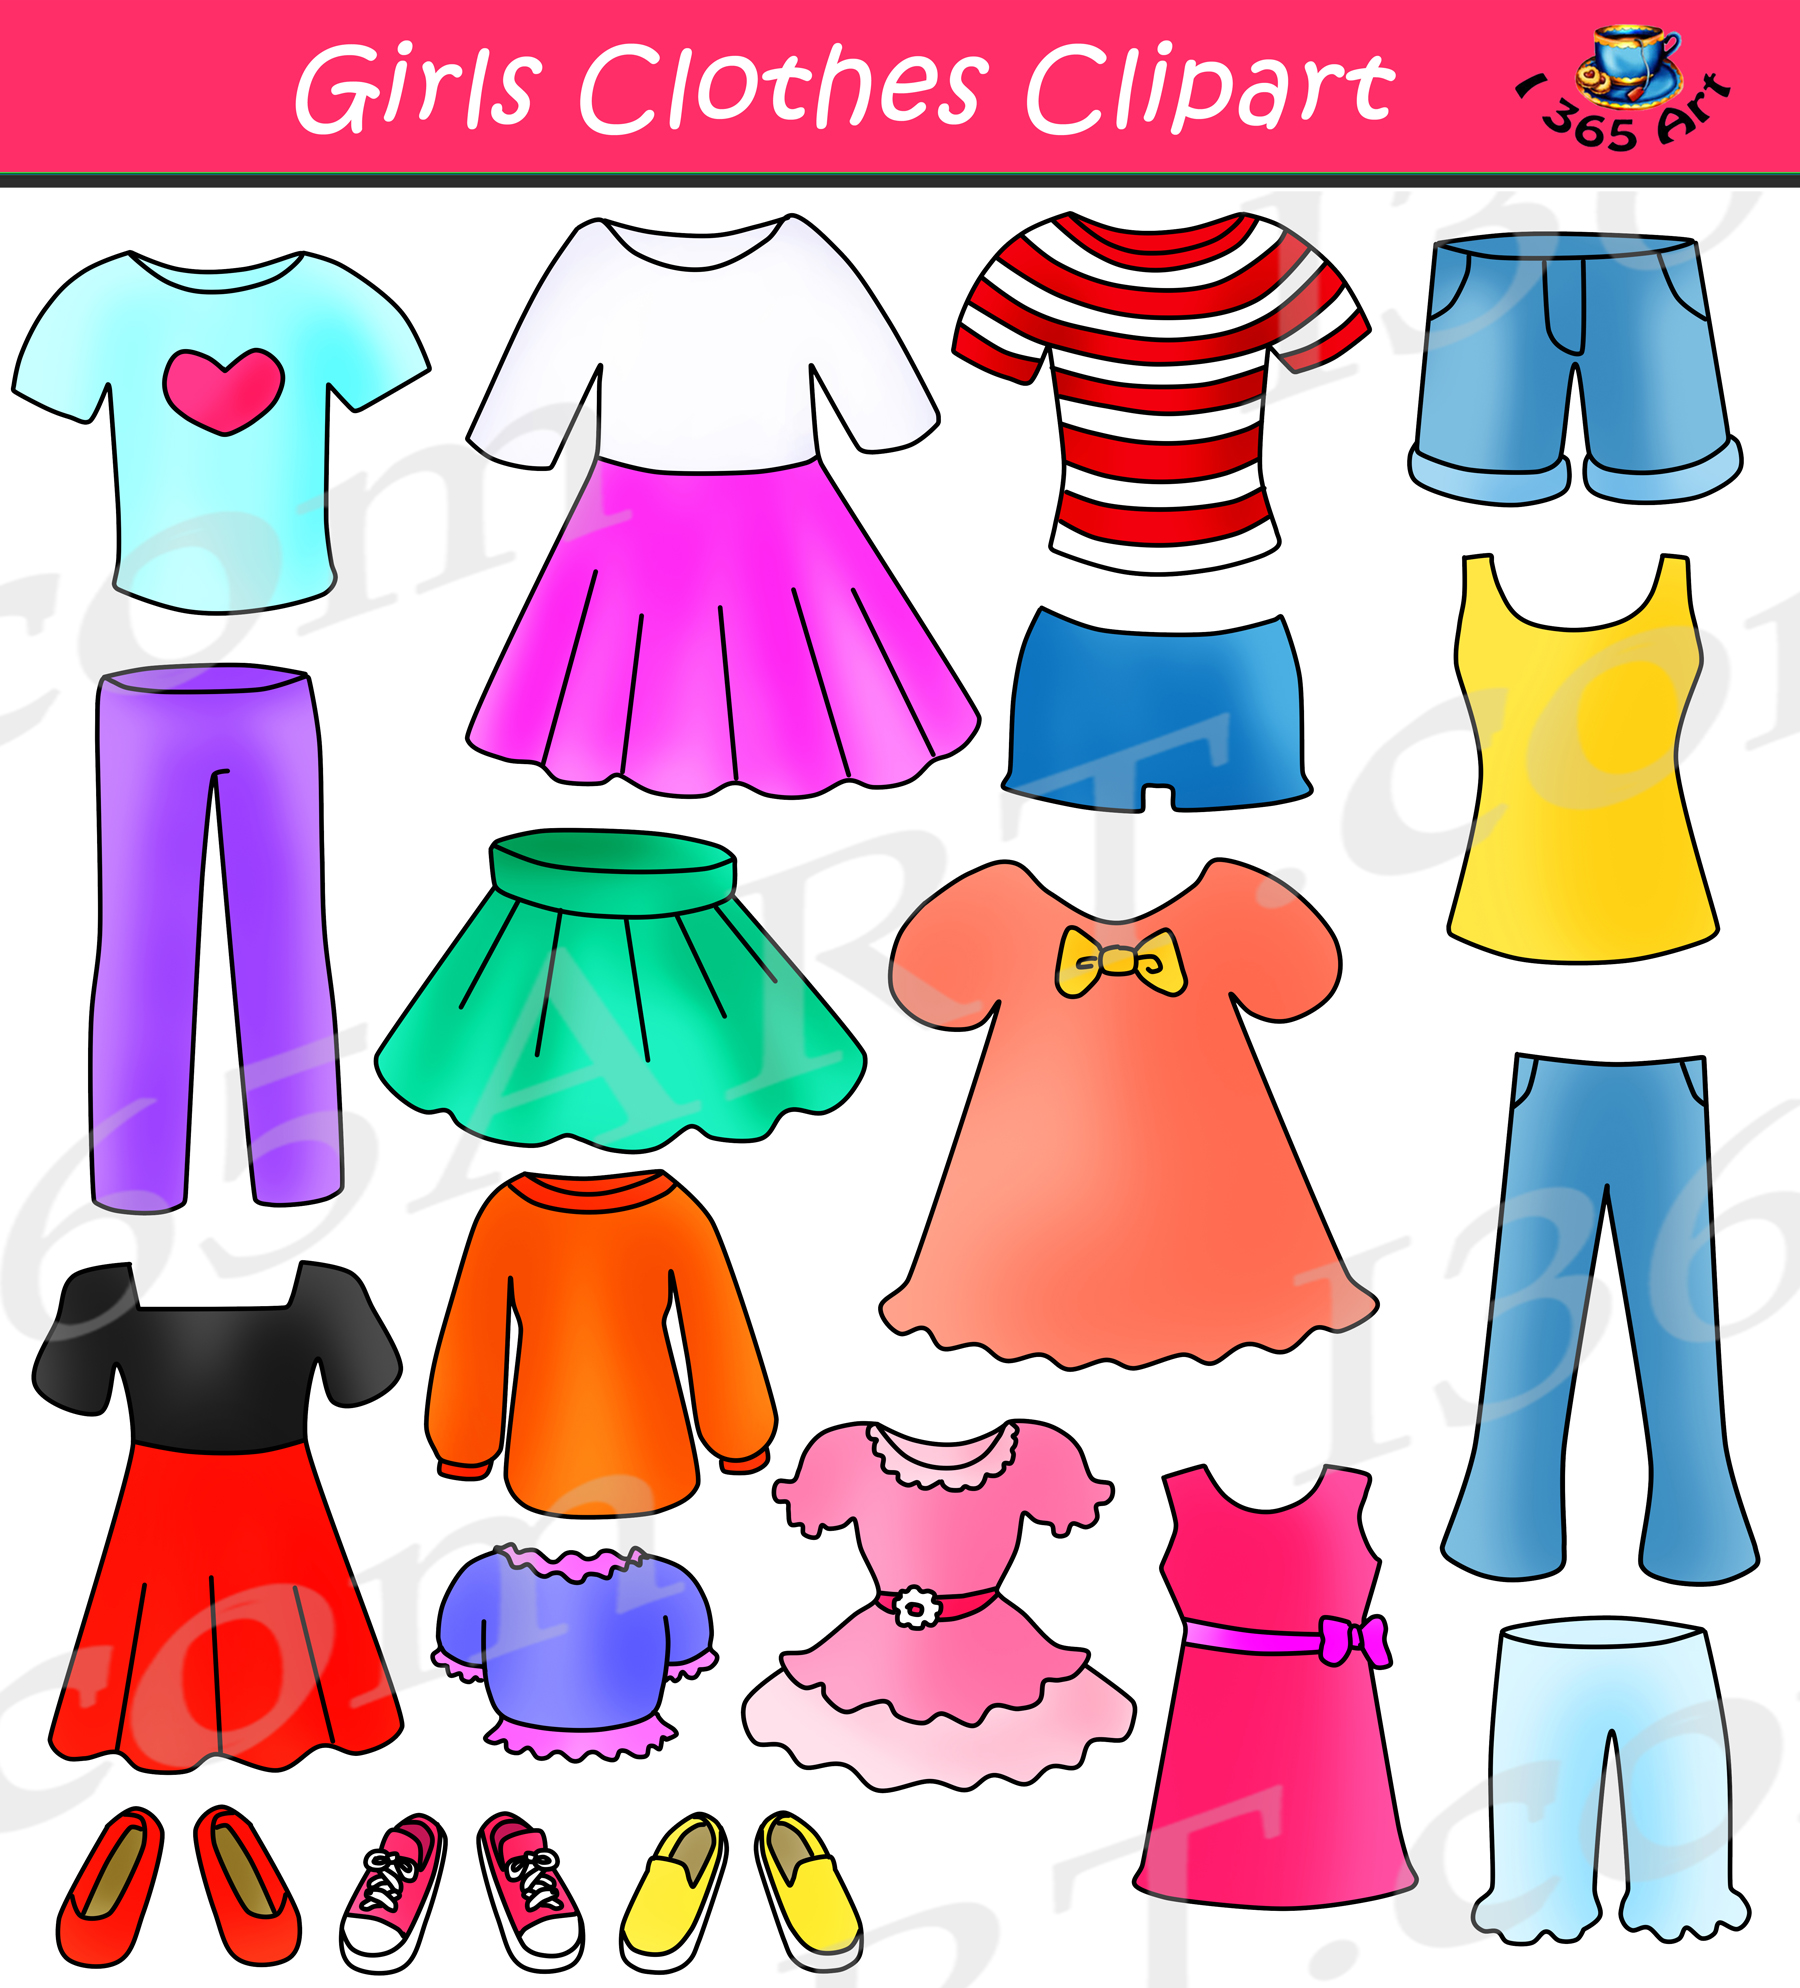 Girls Clothes Clipart Set Dress Up Clip Art.